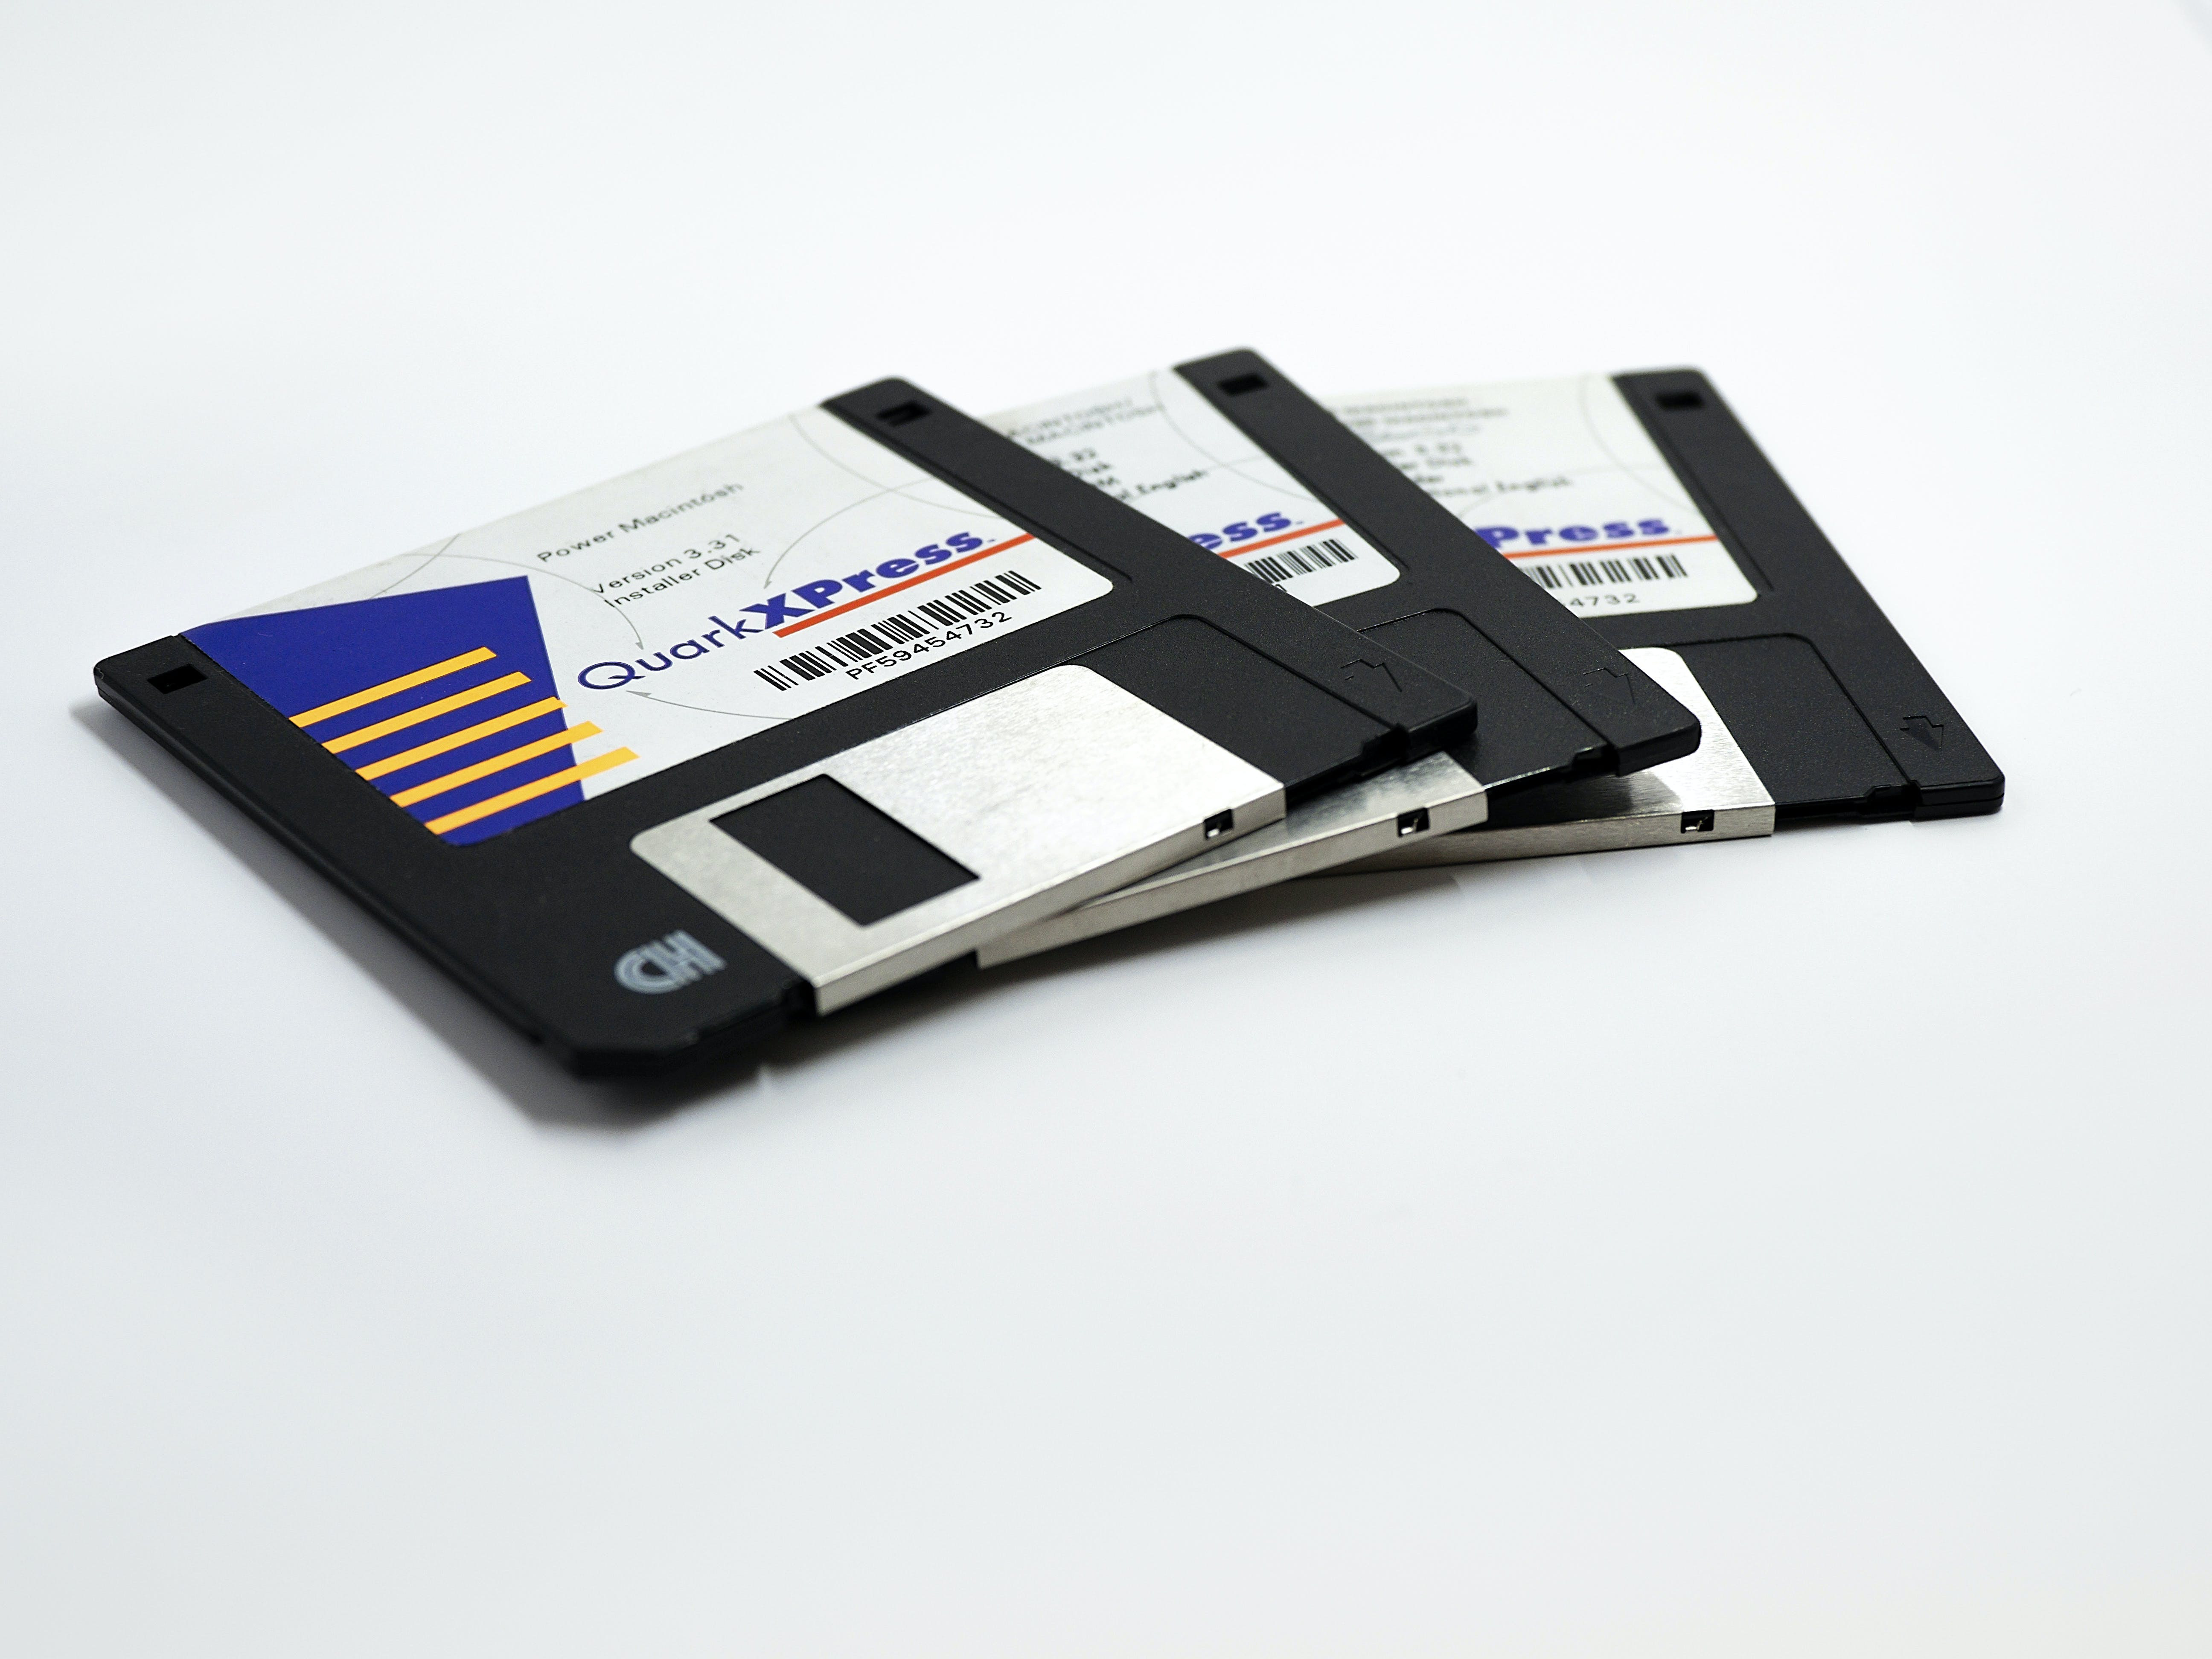 Free stock photo of floppy disk, legacy software, macintosh software, quark xpress